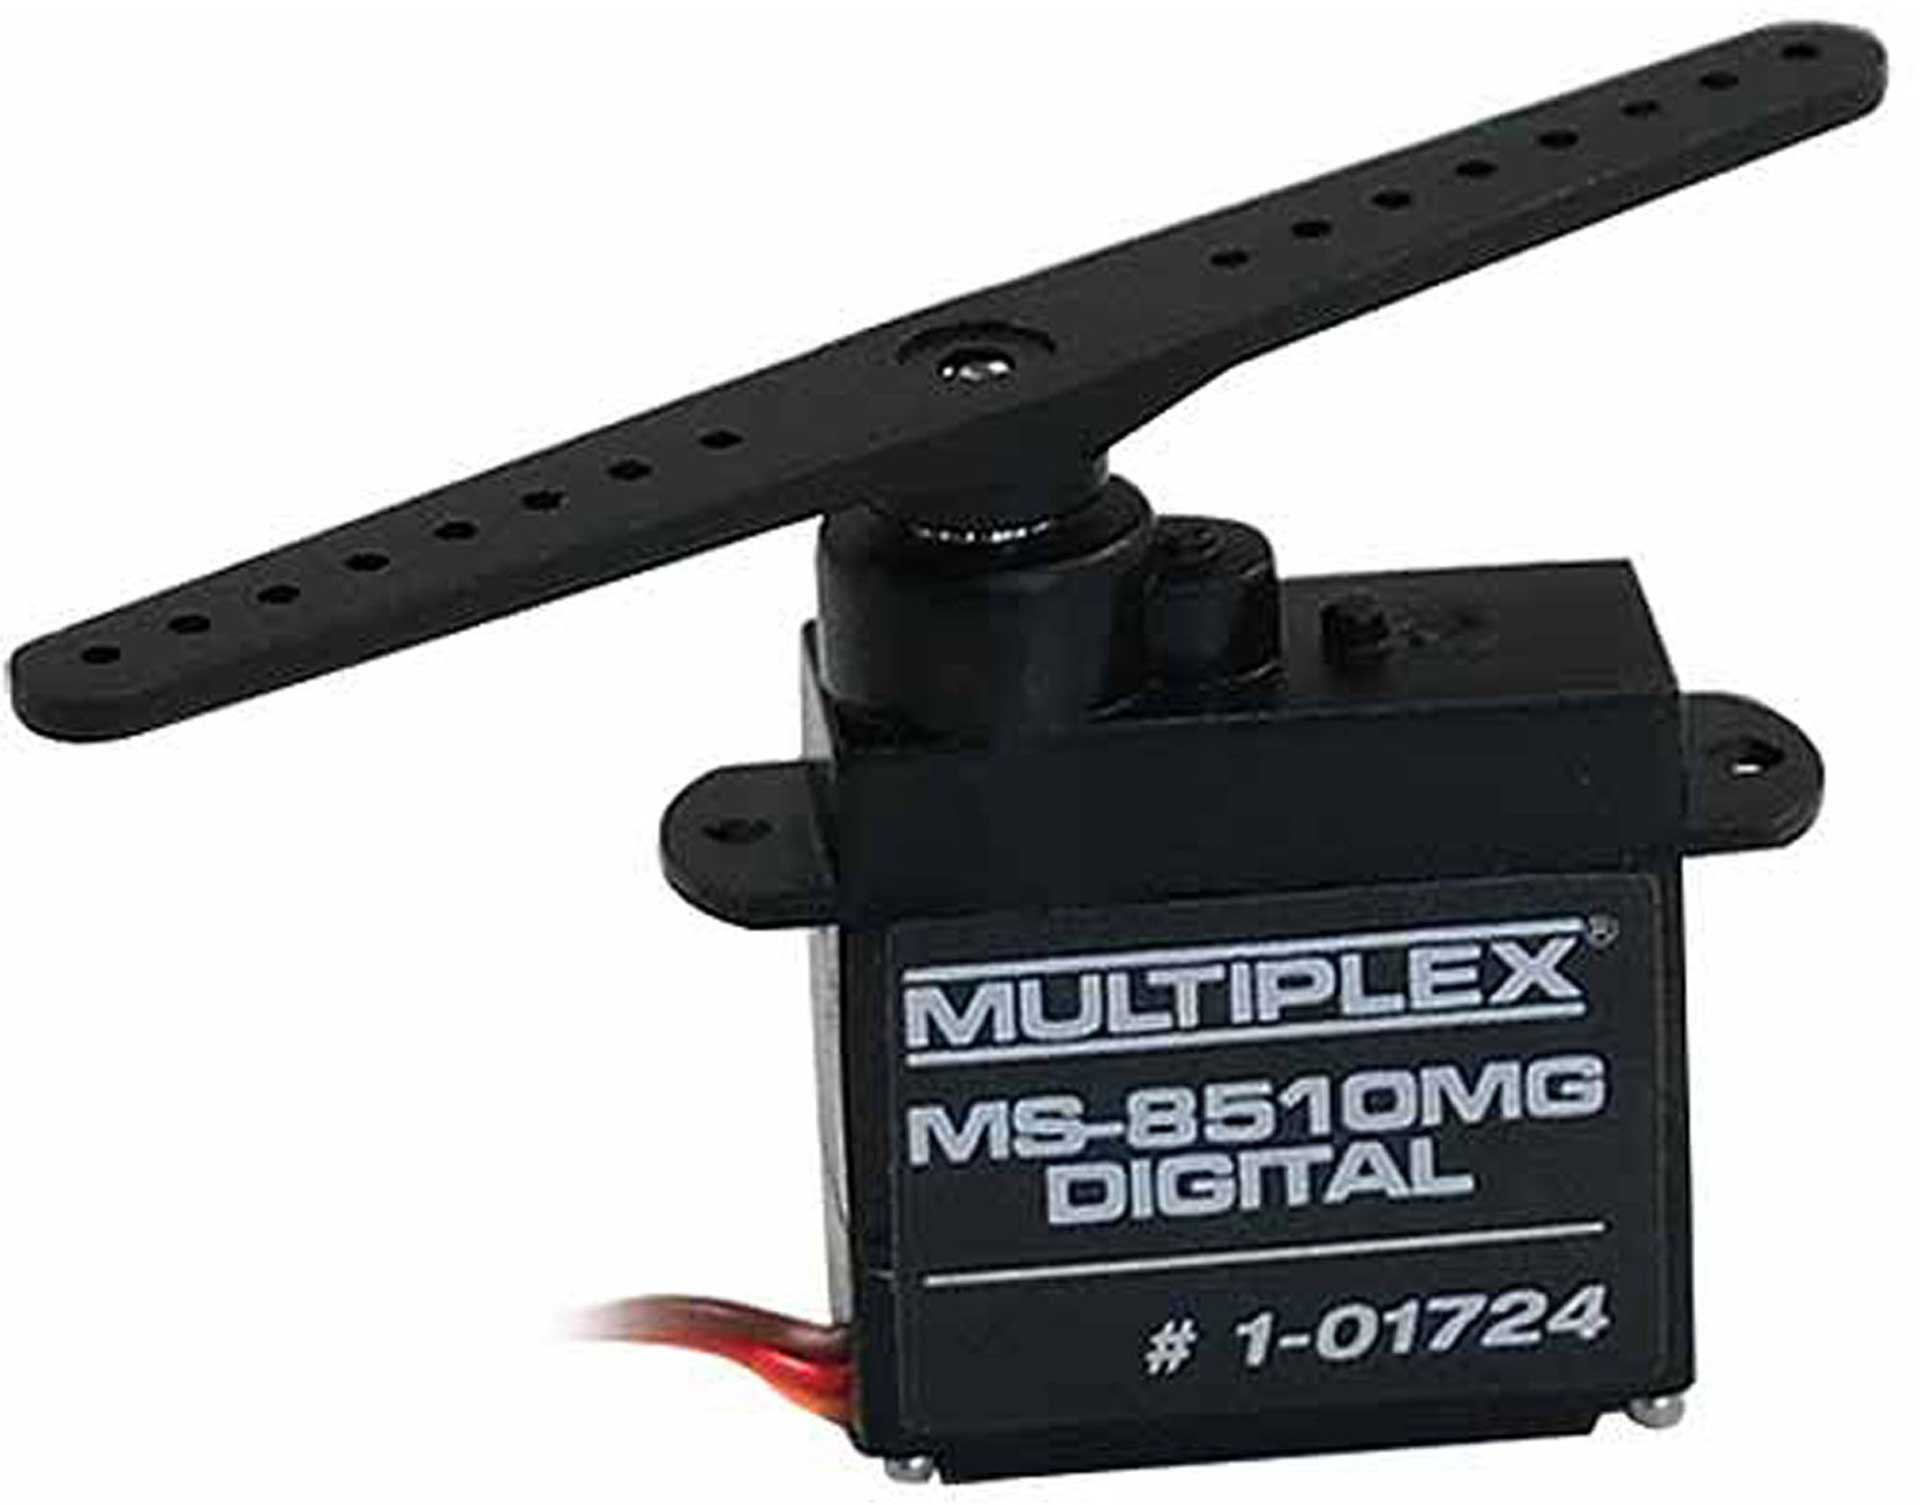 MULTIPLEX MS-8510MG DIGITAL INDOOR SERVO